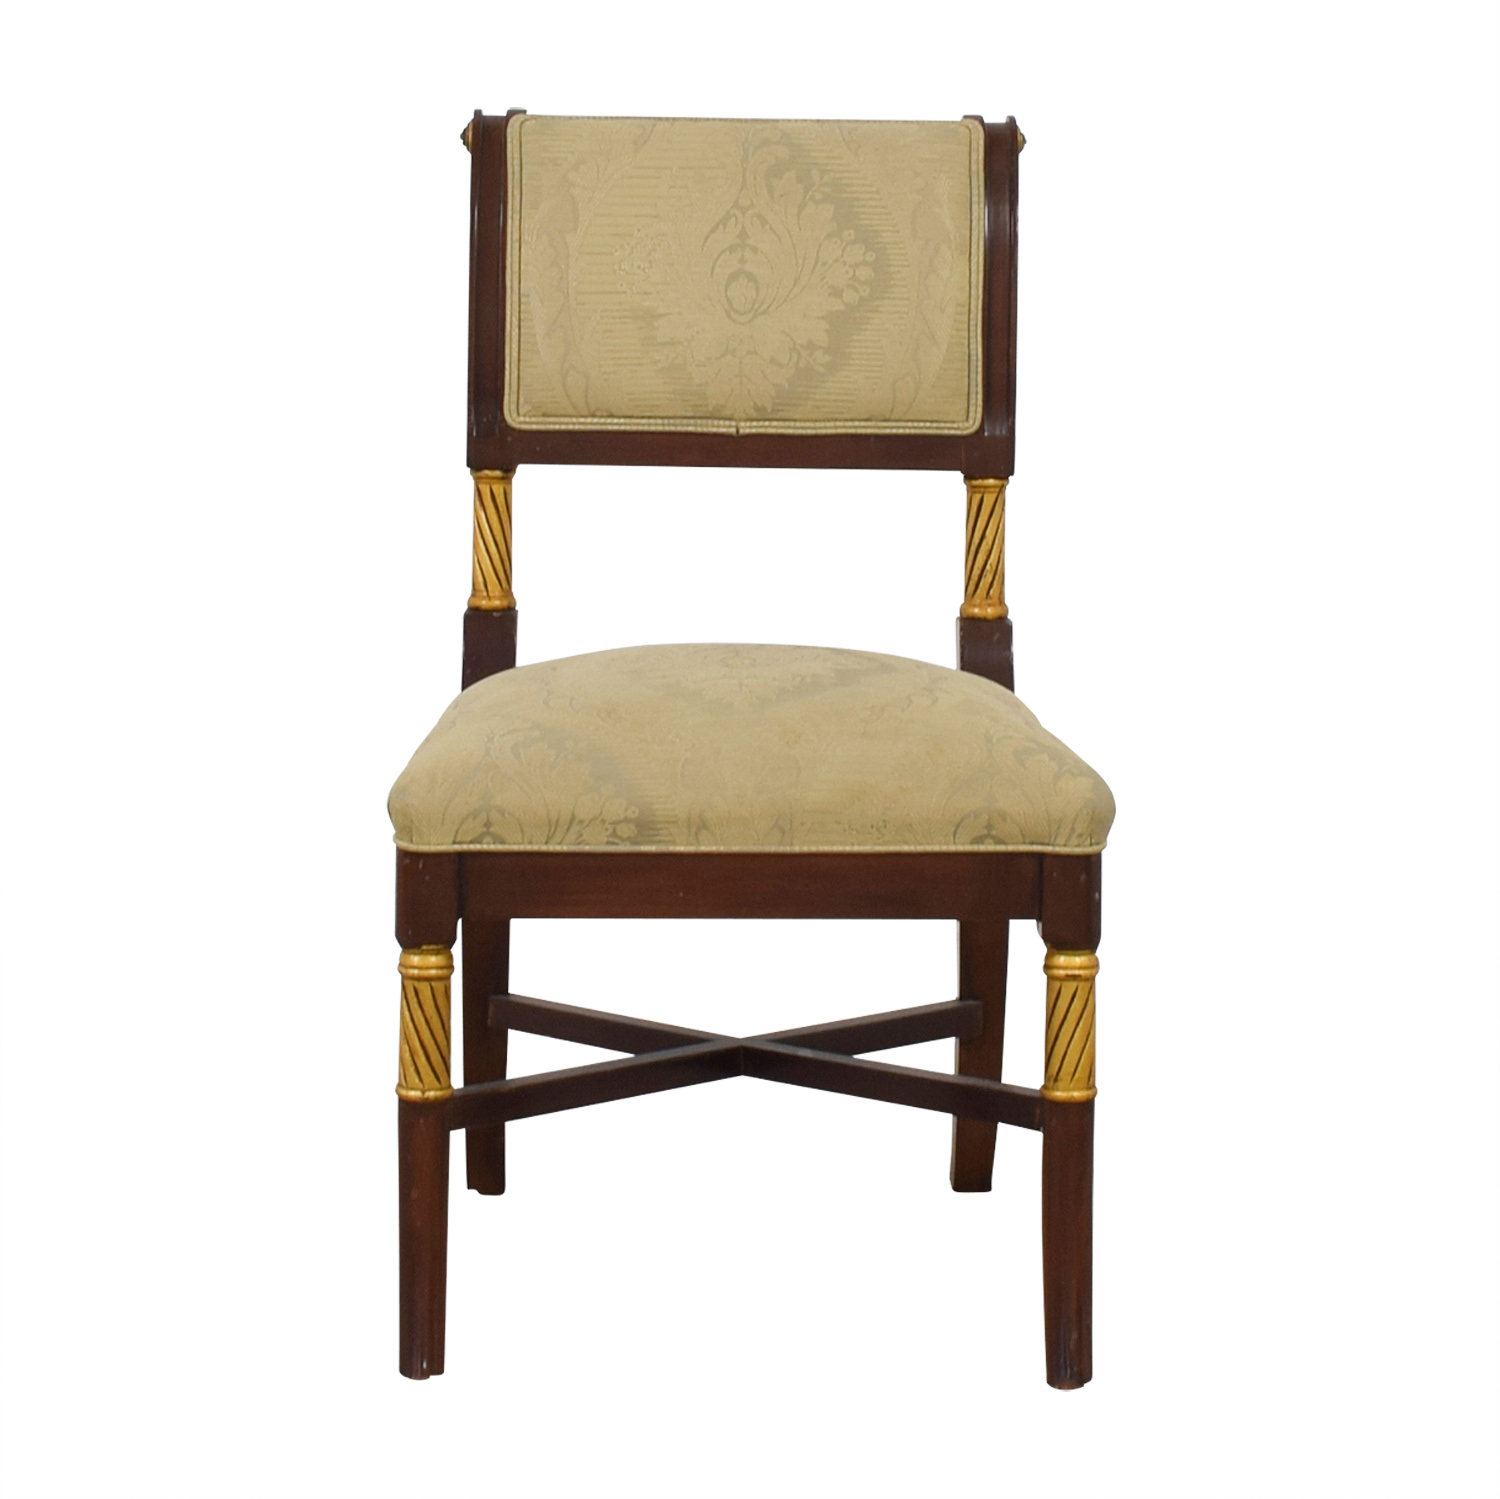 buy  Beige Satin Covered French Chair online